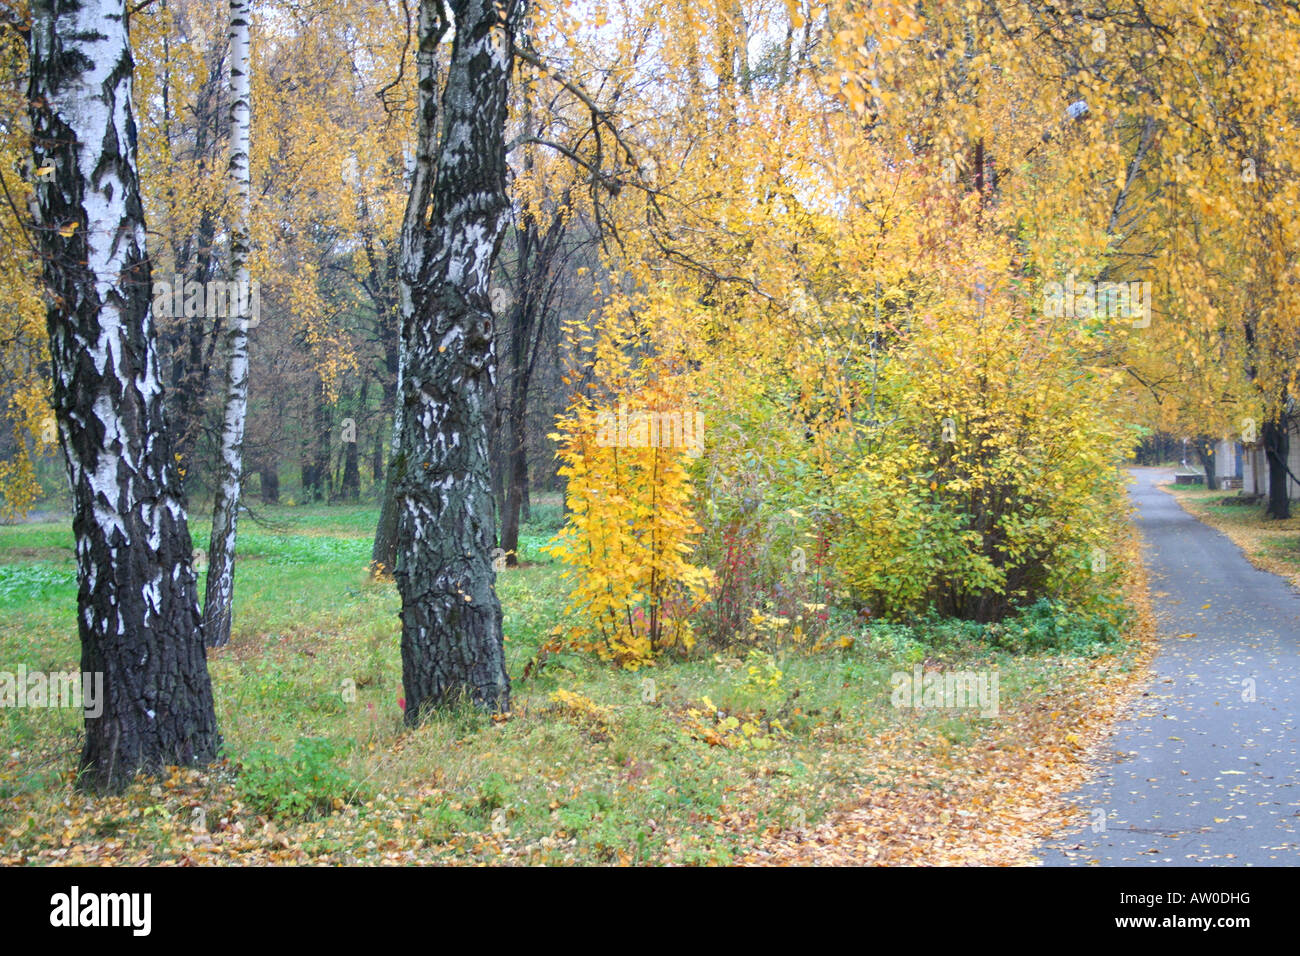 The Birch trees alley in the autumn Stock Photo, Royalty Free Image ...